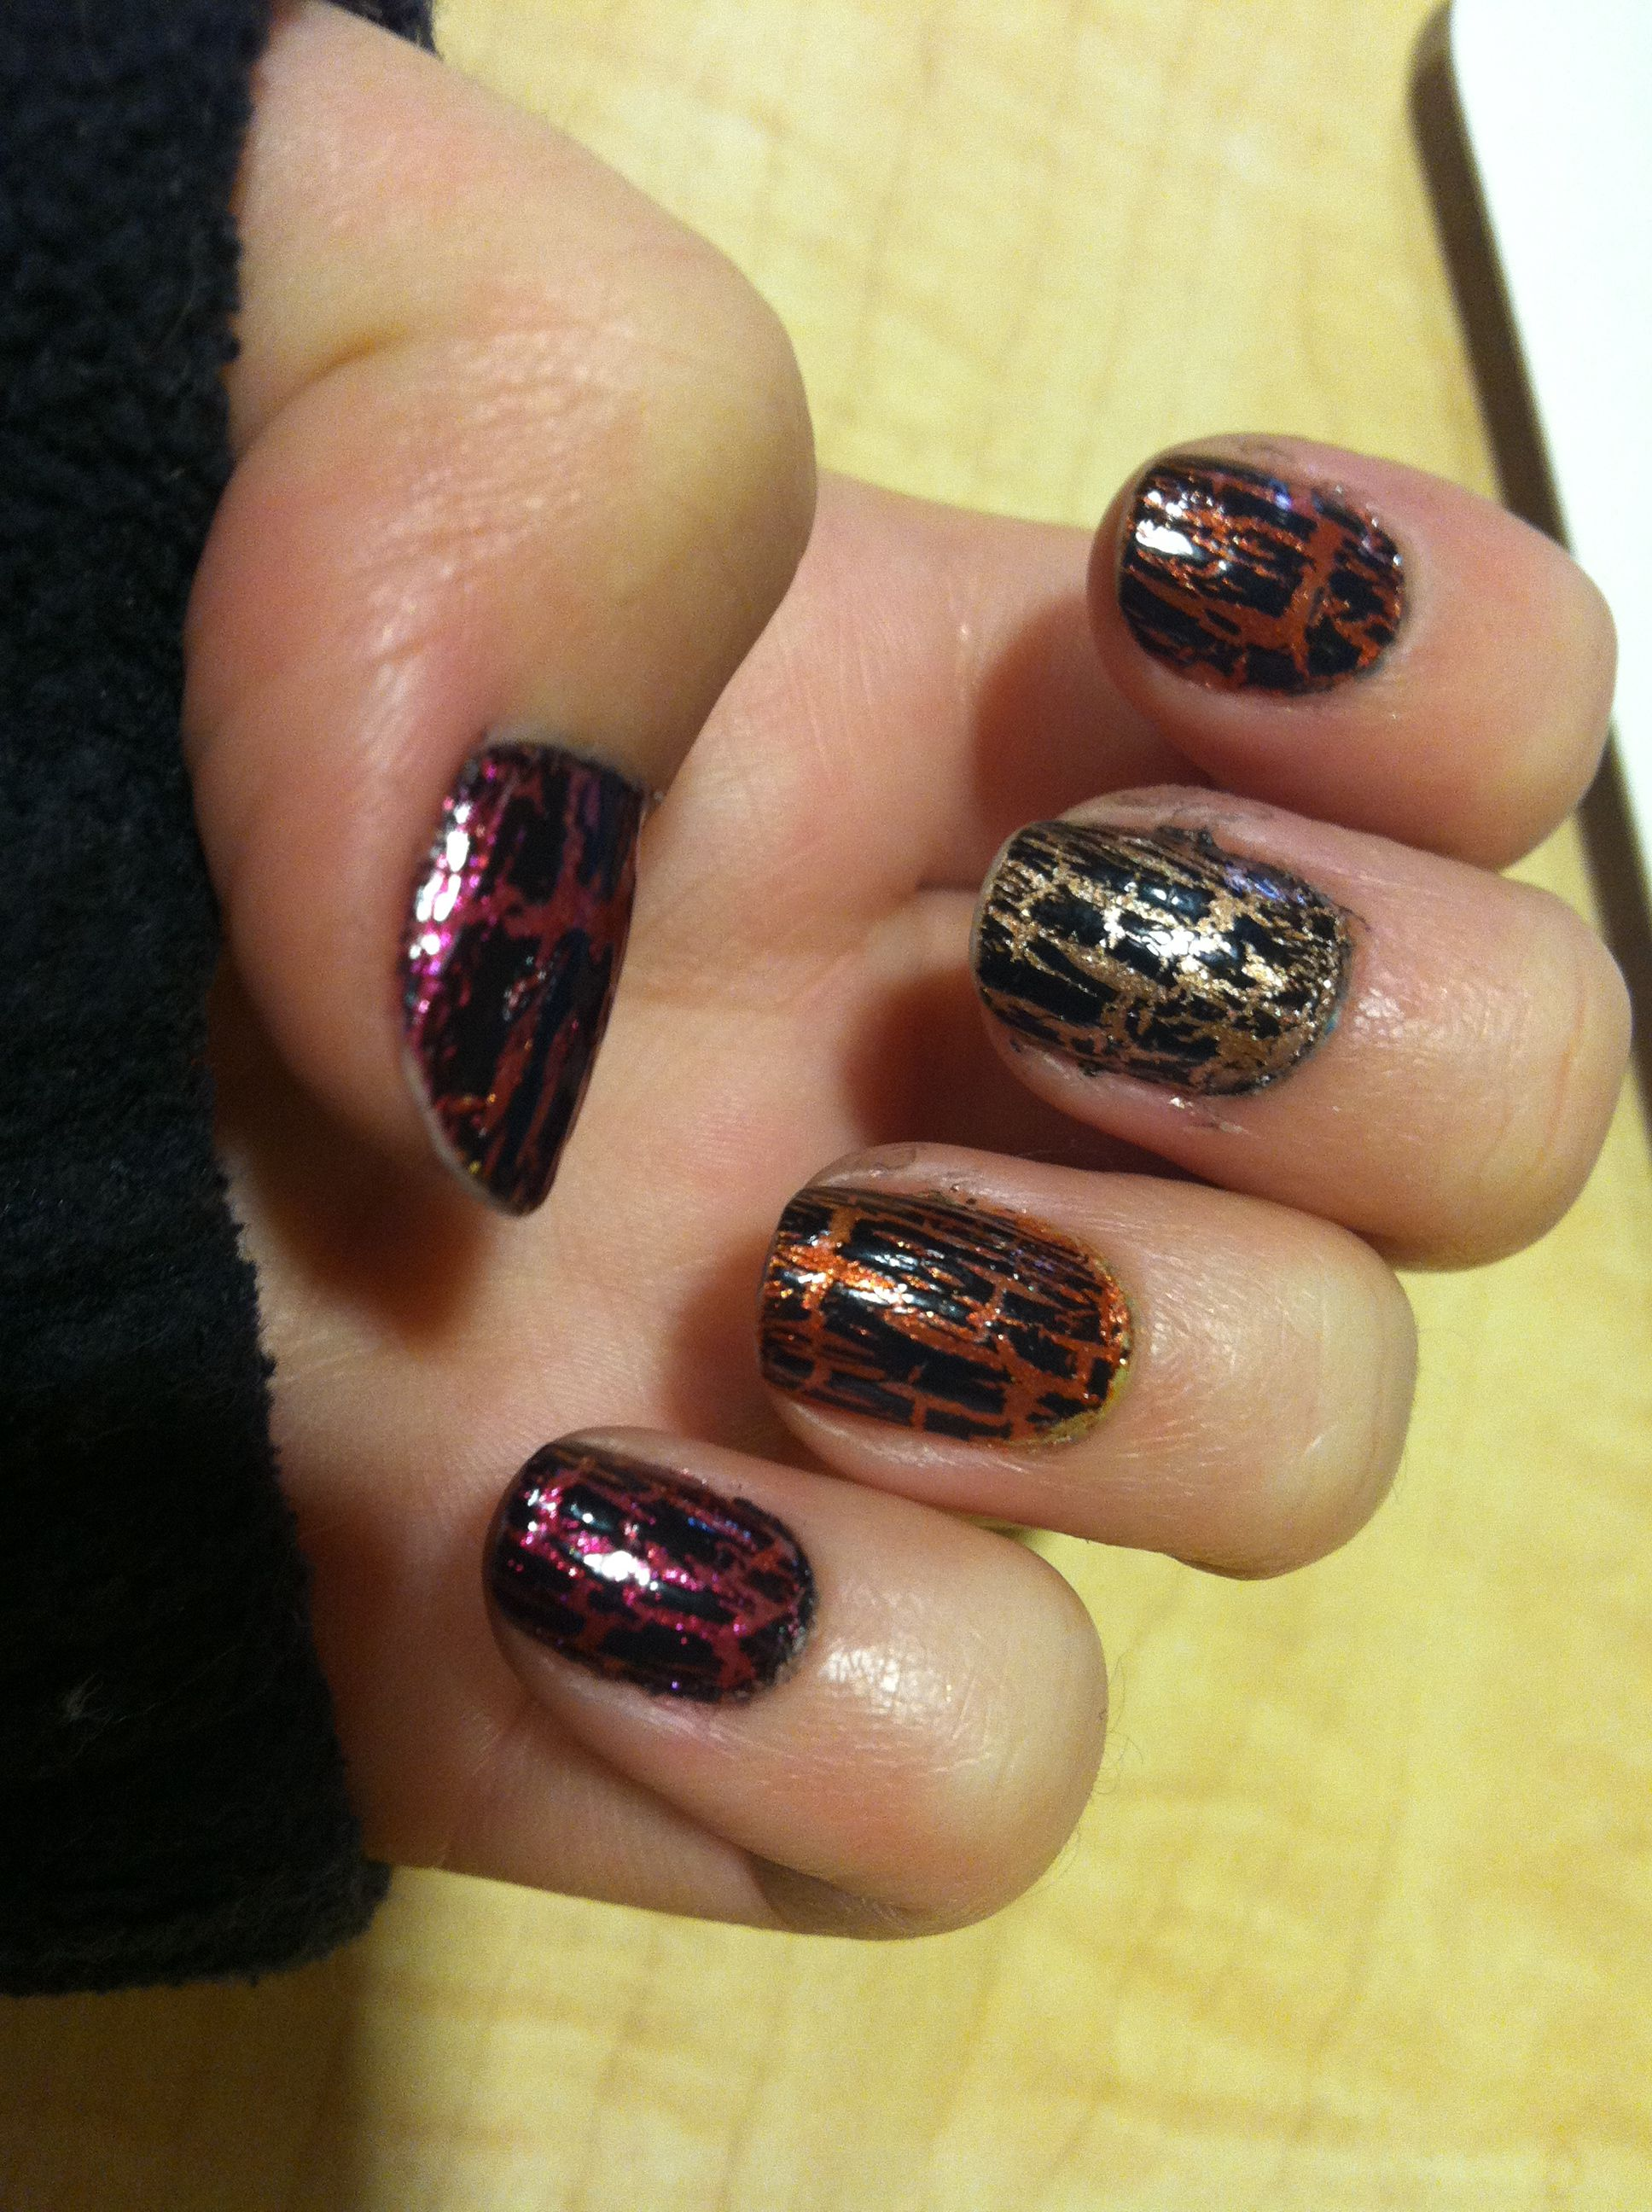 Black crackle with fall colors underneath